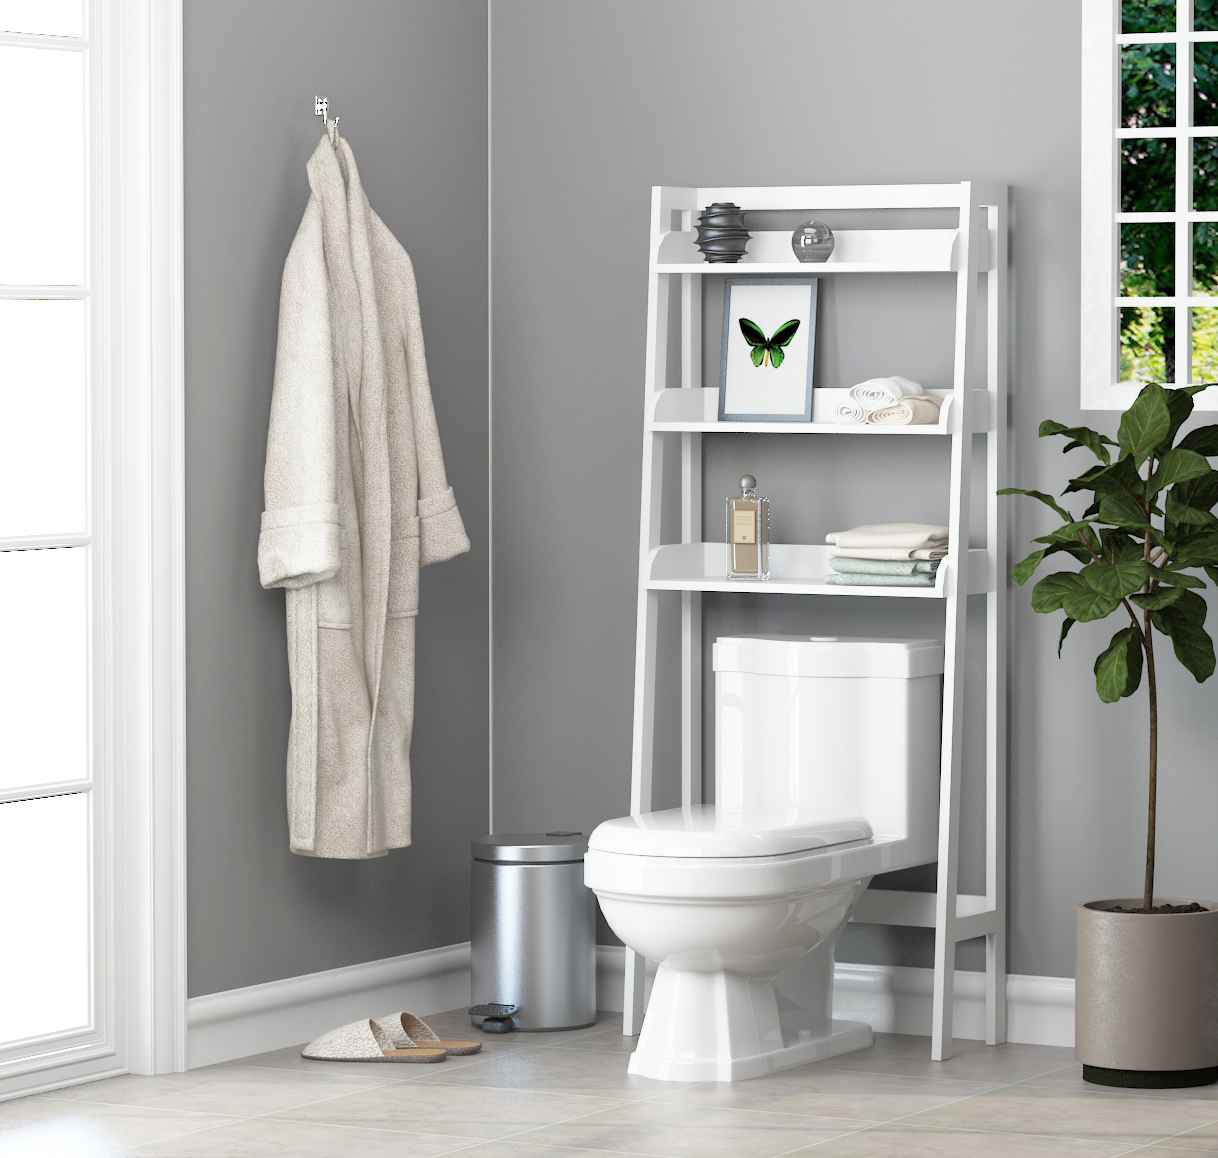 Bathroom Essentials Utex 3 Shelf Bathroom Organizer Over The Toilet Bathroom Space Saver Bathroom Shelf White Finish